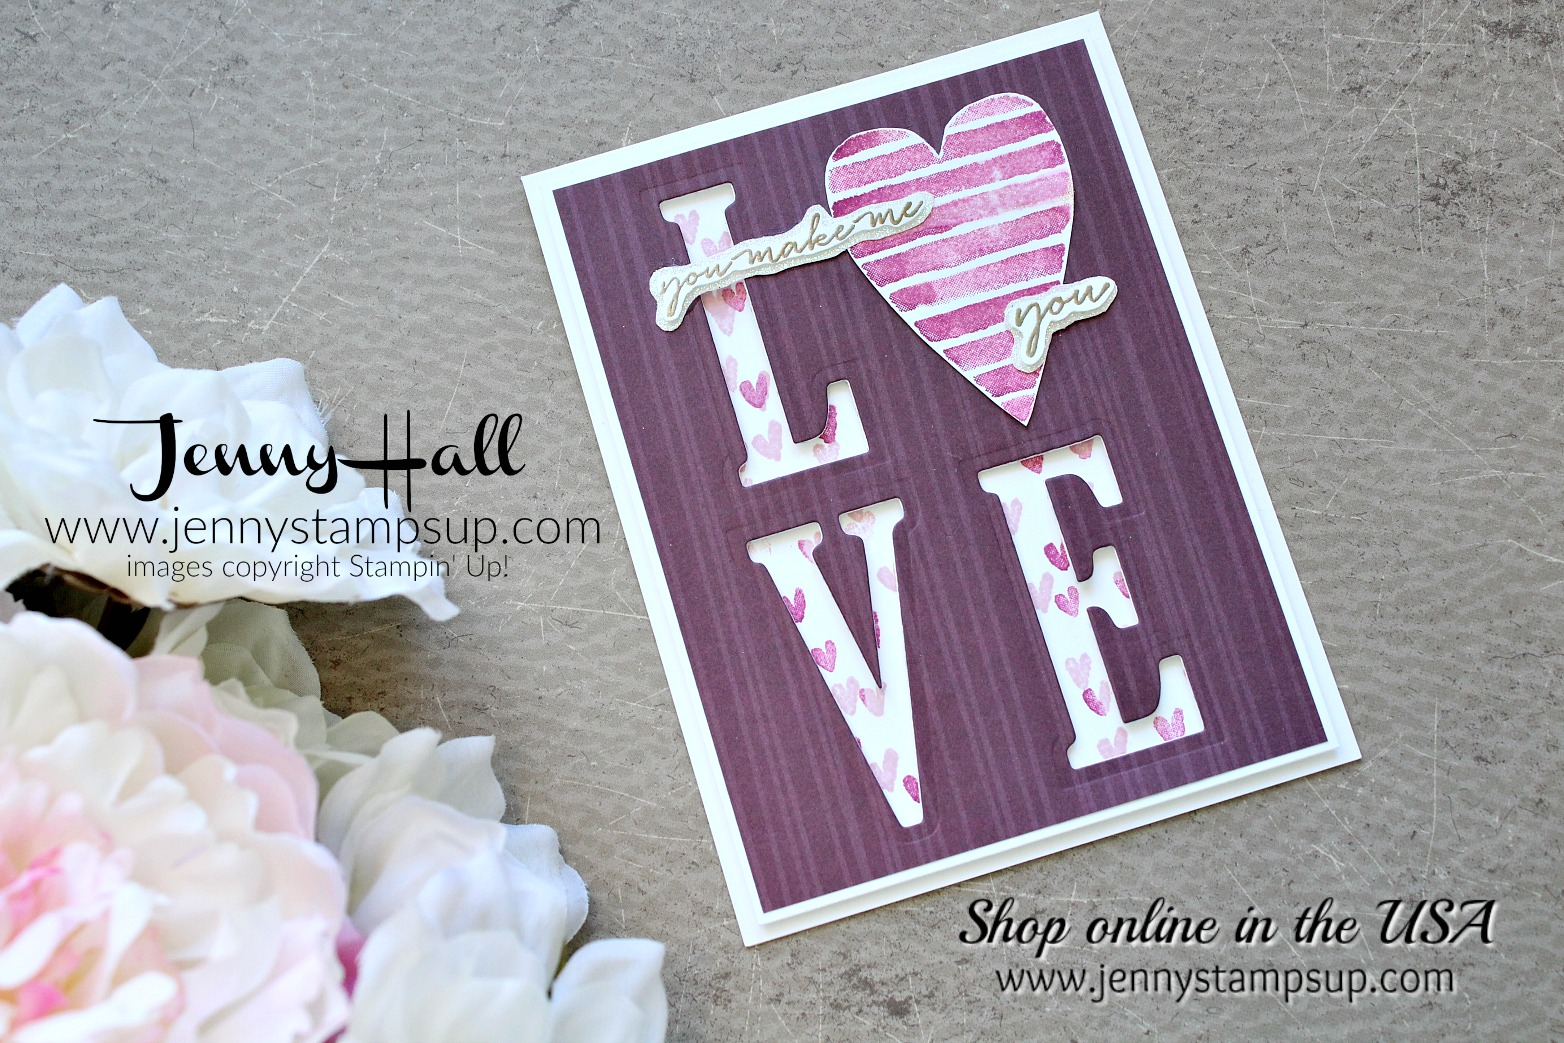 Heart Happiness Valentine's Day card by Jenny Hall at www.jennystampsup.com for #cardmaking #valentinesdaycard #stamping #stampinup #happywishesstamp #largelettersframelits #jennystampsup #jenyhalldesign #jennyhallstampinup #papercrafting #artsandcrafts #lovenote